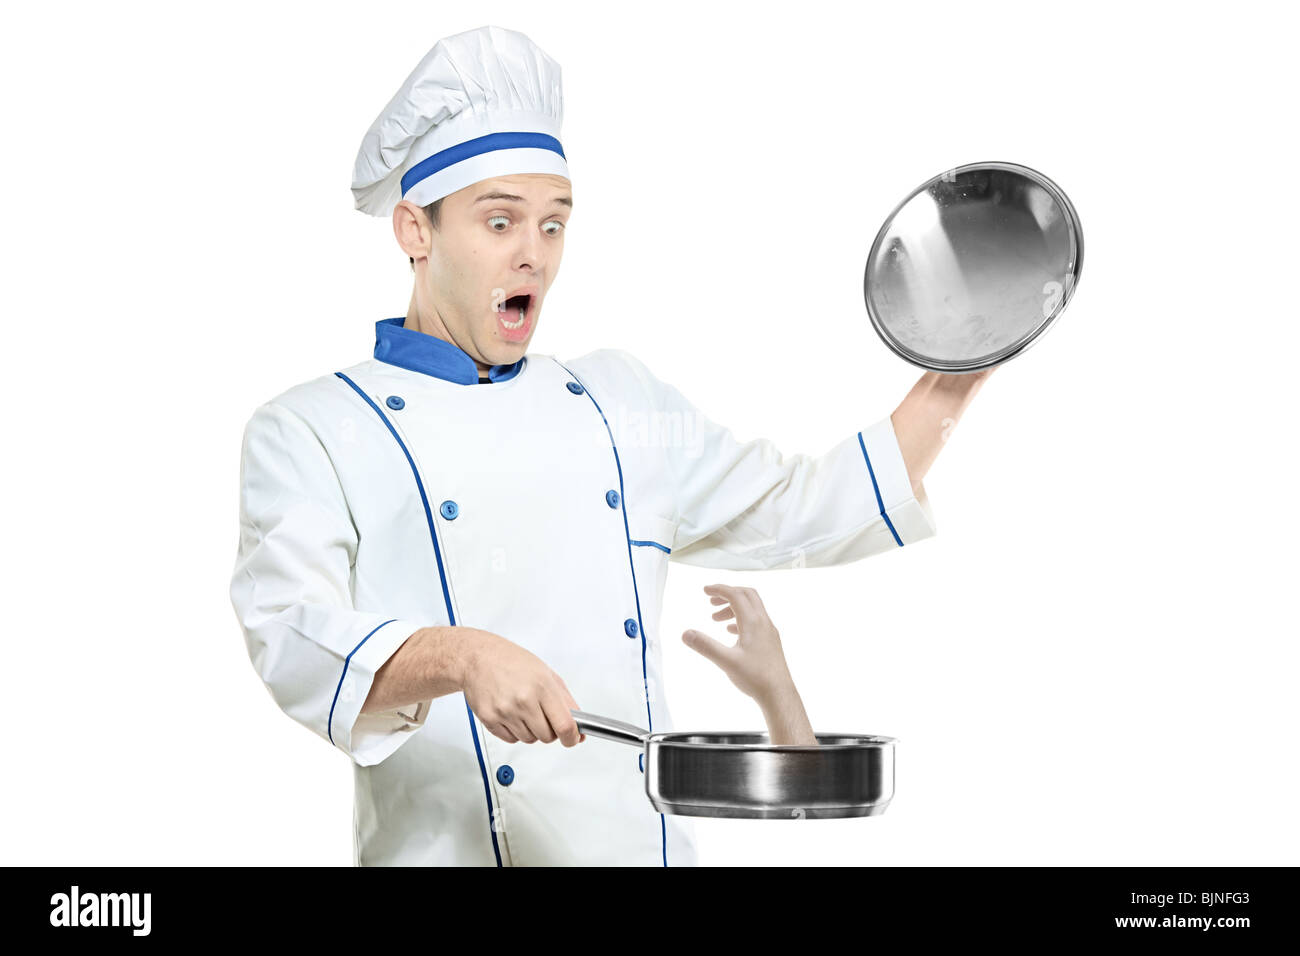 A surprised chef holding a frying pan - Stock Image